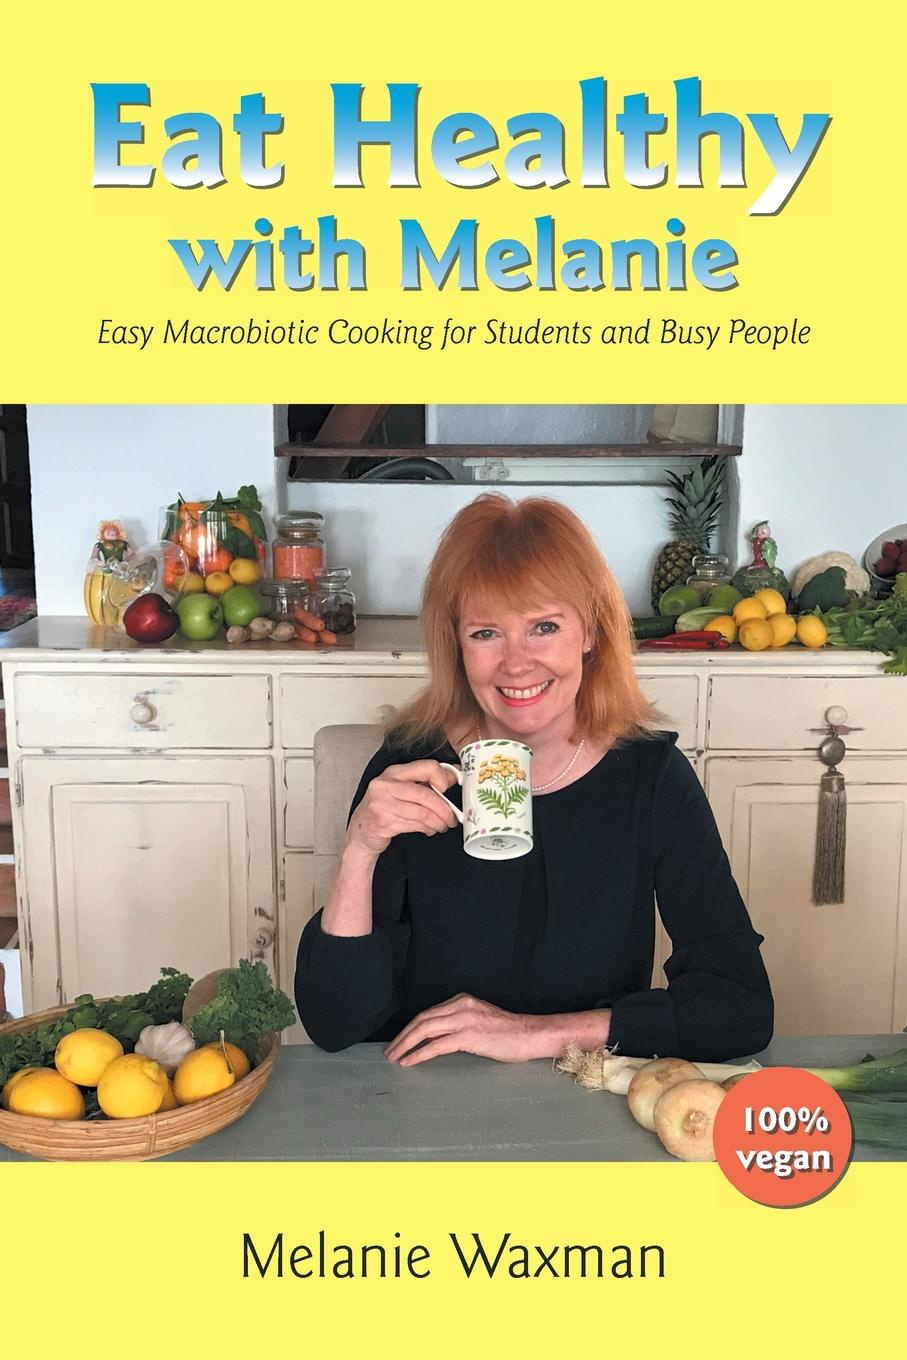 лучшая цена Melanie Waxman Eat Healthy with Melanie. Easy Macrobiotic Cooking for Students and Busy People